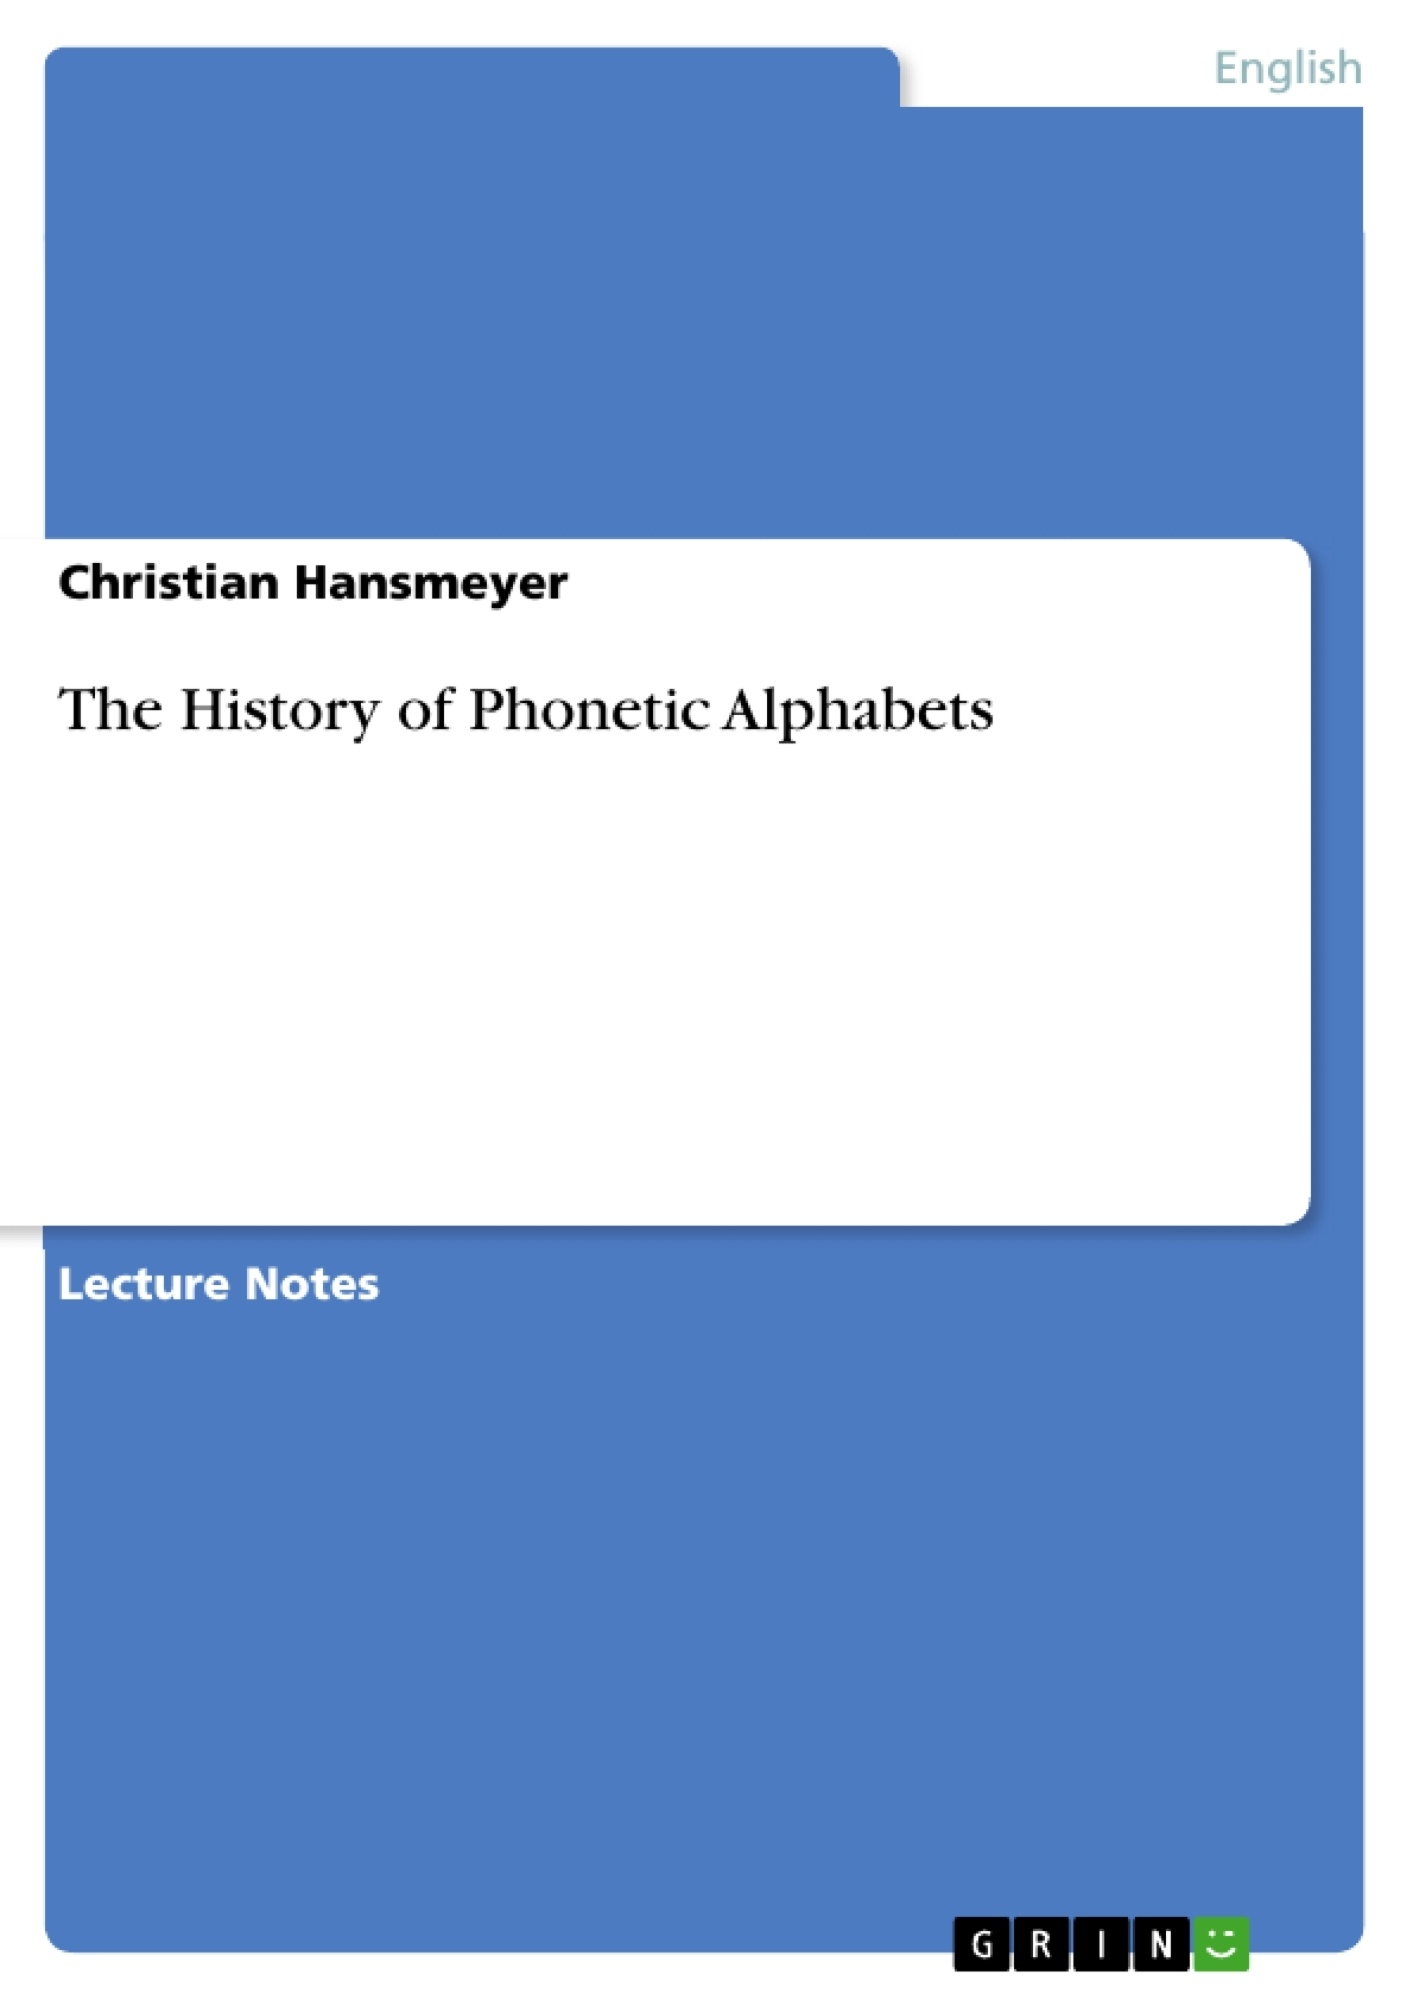 Title: The History of Phonetic Alphabets